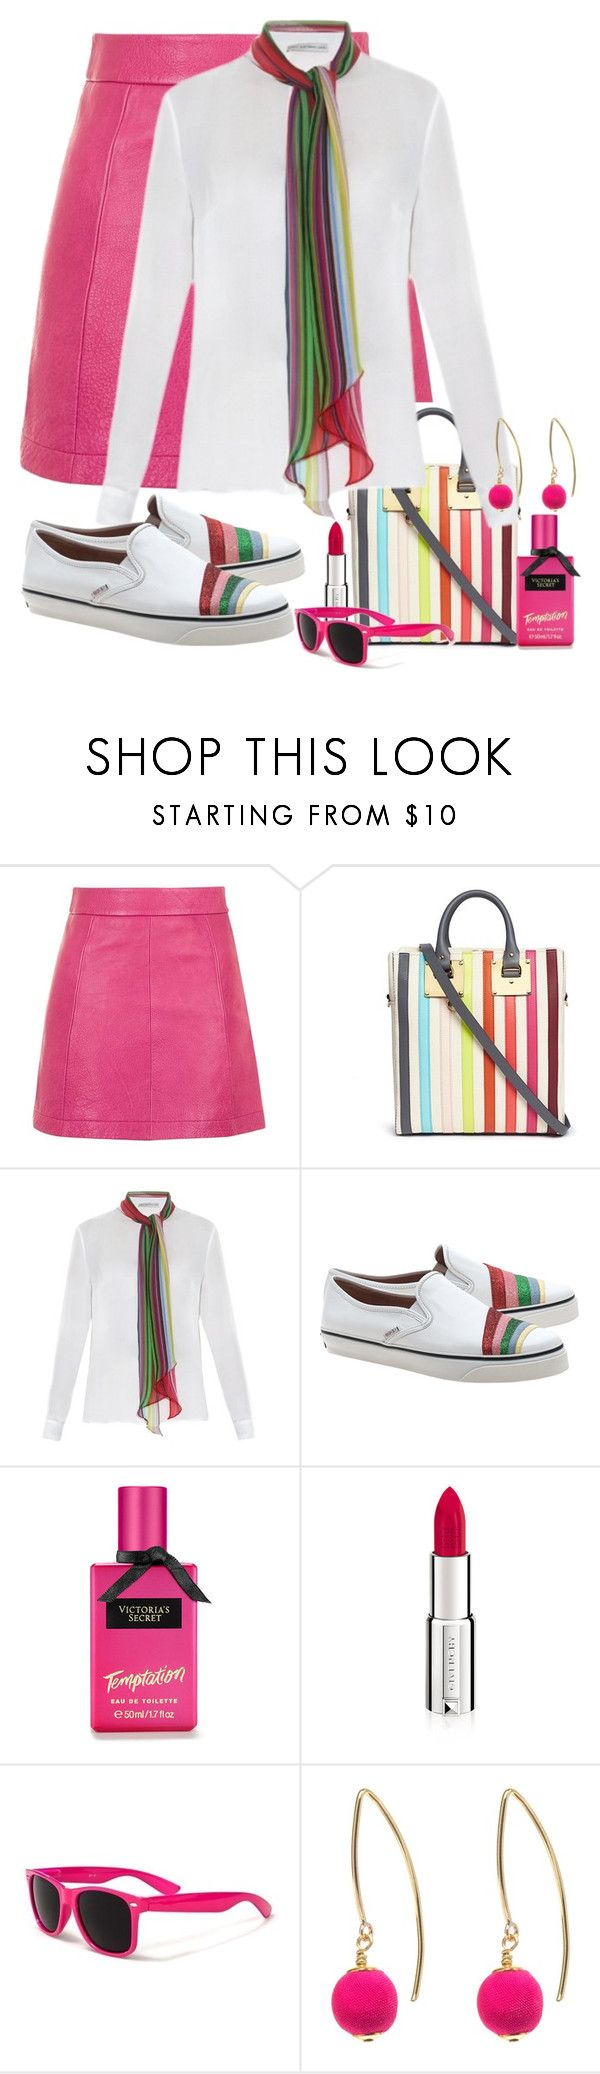 """""""Sophie Hulme 'Cromwell Mini' rainbow stripe canvas tote"""" by ann-kelley14 ❤ liked on Polyvore featuring Topshop, Sophie Hulme, Mary Katrantzou, RED Valentino, Victoria's Secret, Givenchy and Dorus Mhor"""